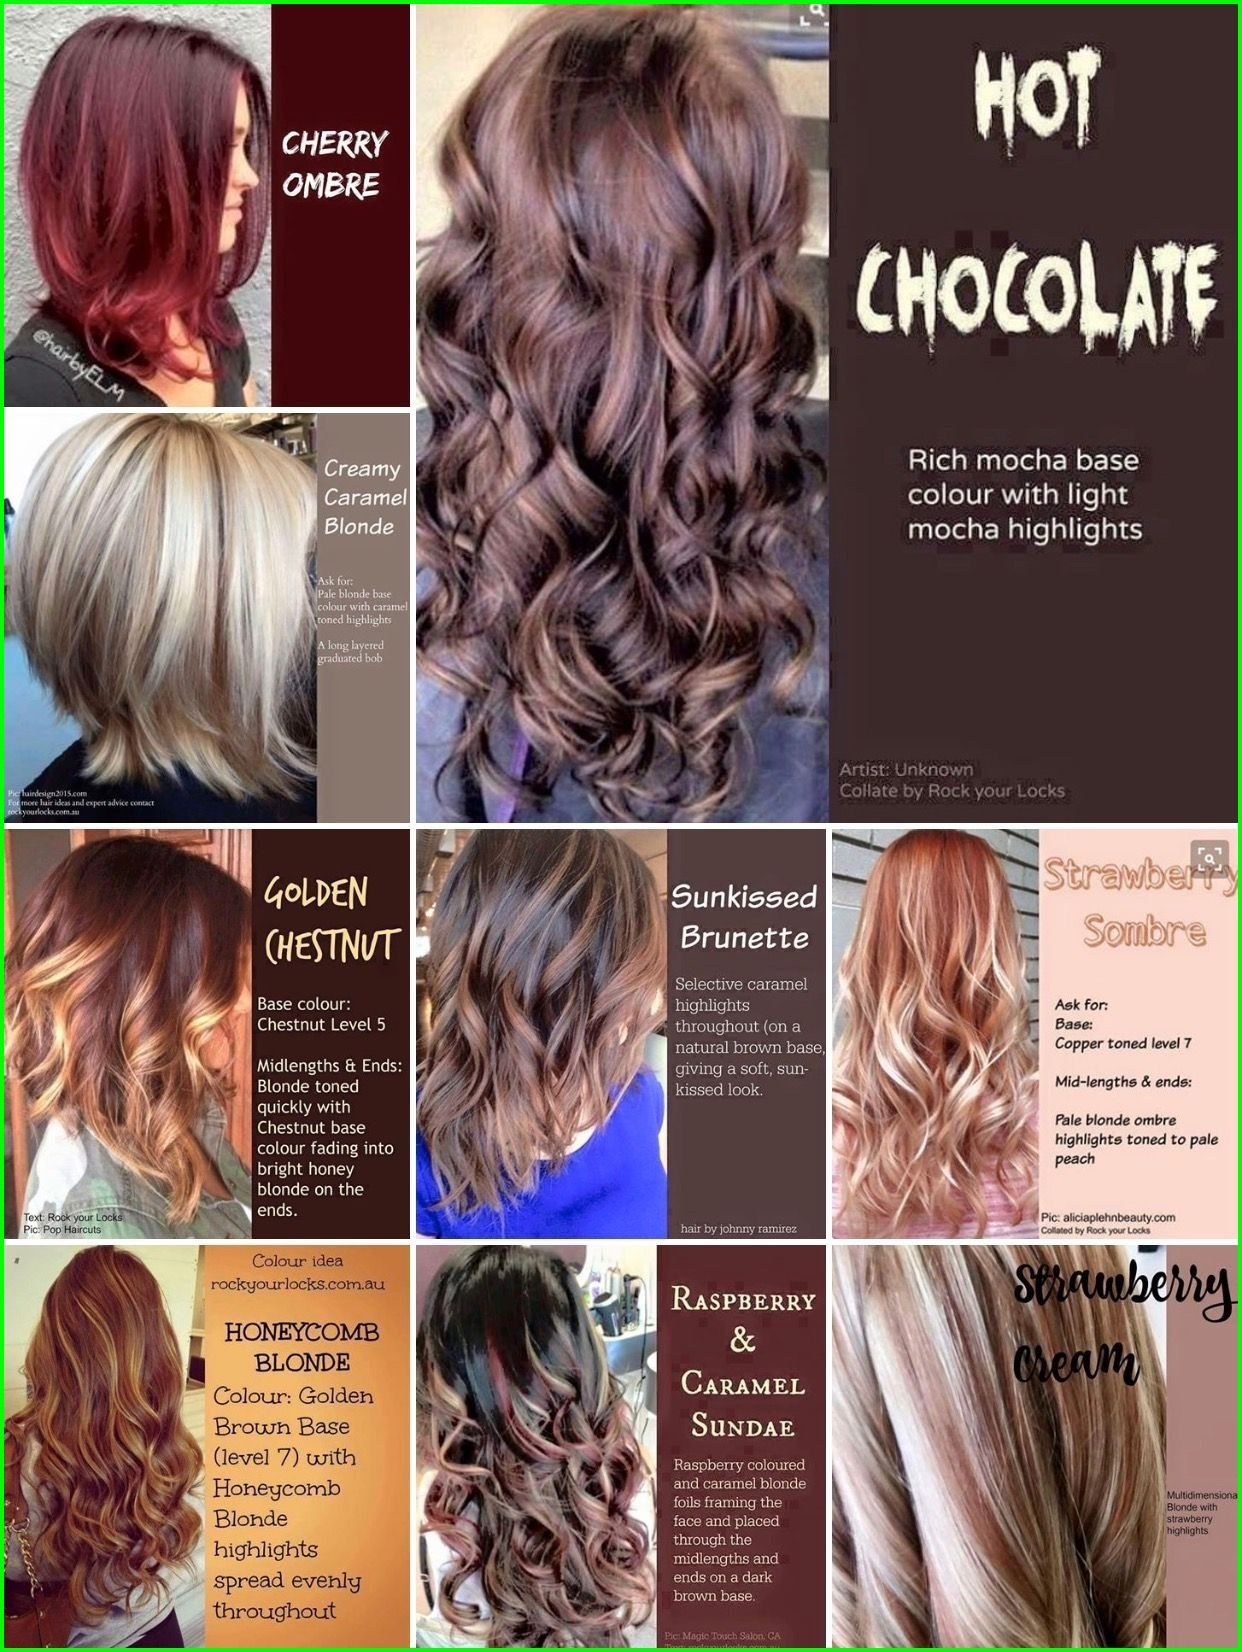 Level 7 Hair Color With Highlights 3417 Pin By Robert Williams On Fall Hair Colors In 2019 Level 7 Hair Color Hair Color Highlights Fall Hair